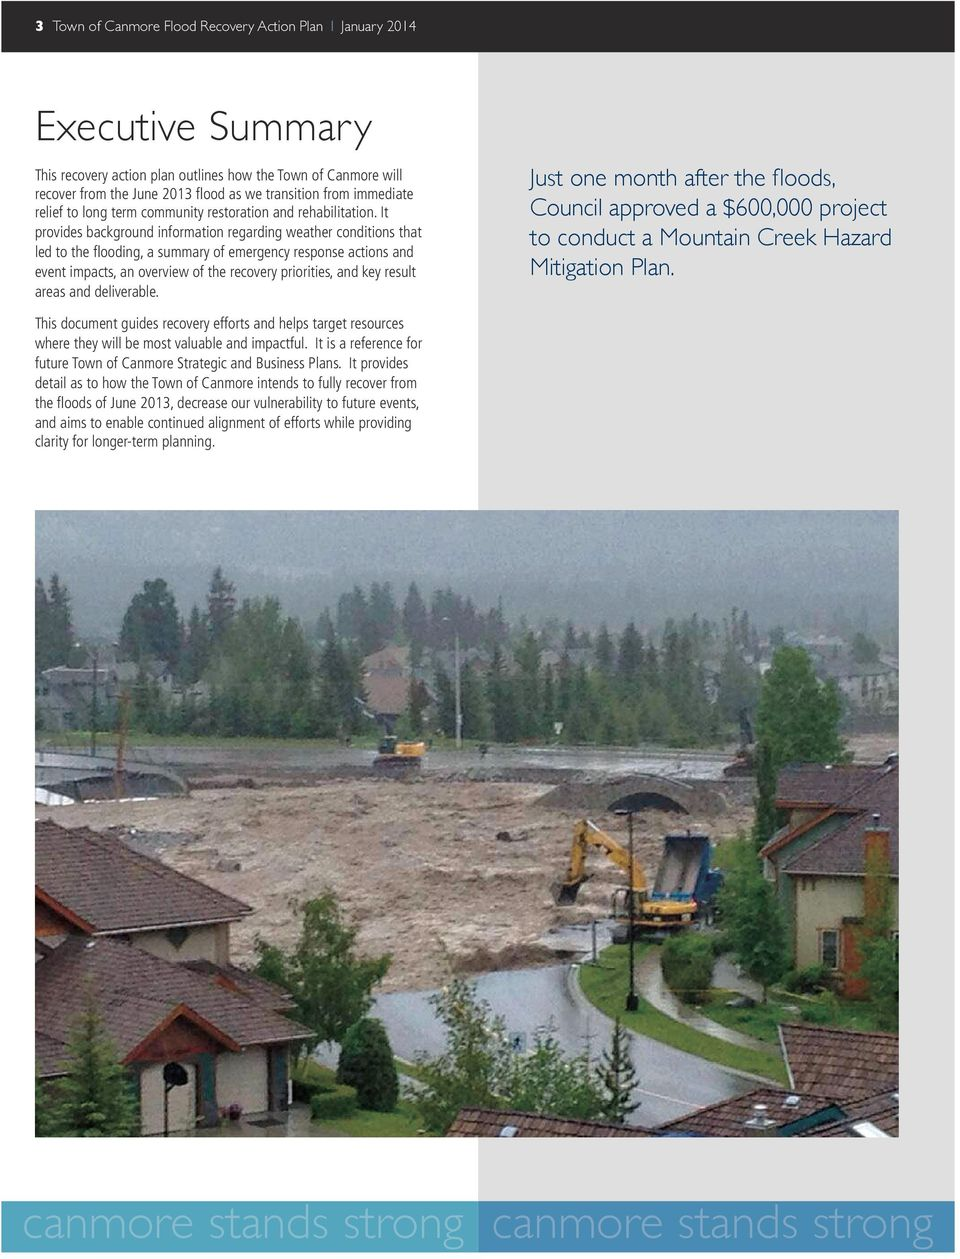 It provides background information regarding weather conditions that led to the flooding, a summary of emergency response actions and event impacts, an overview of the recovery priorities, and key